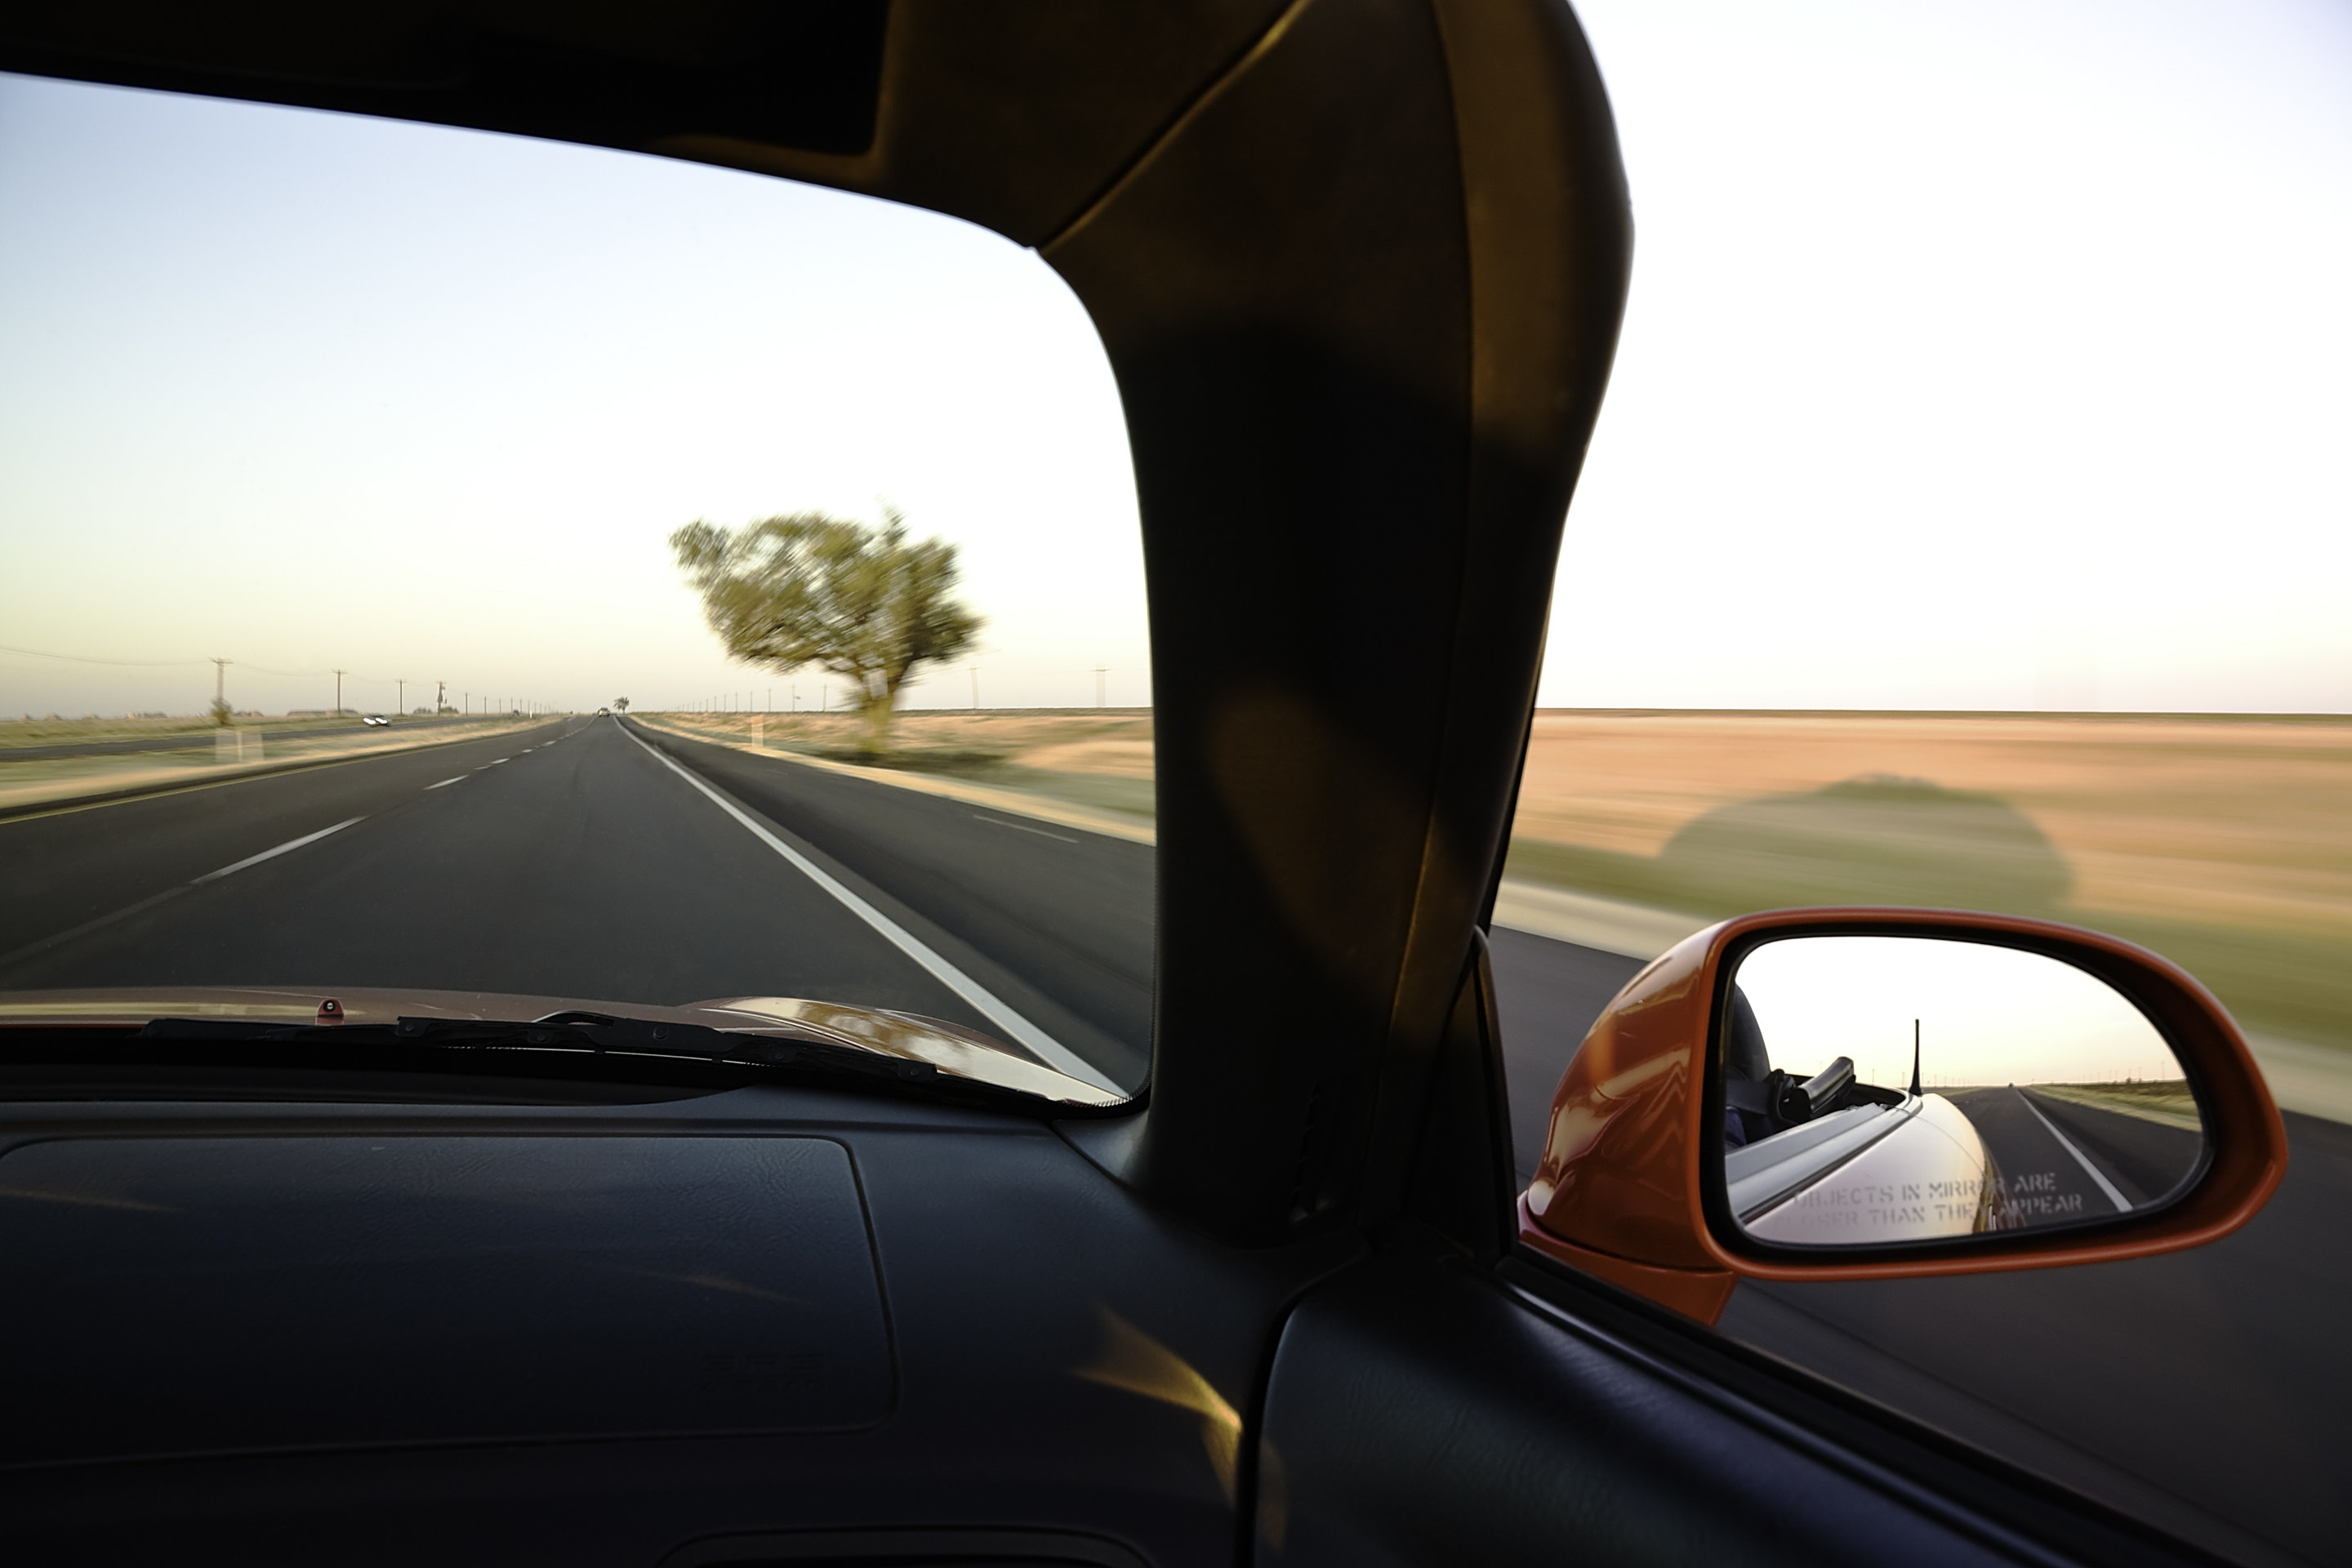 Driving on an open road.